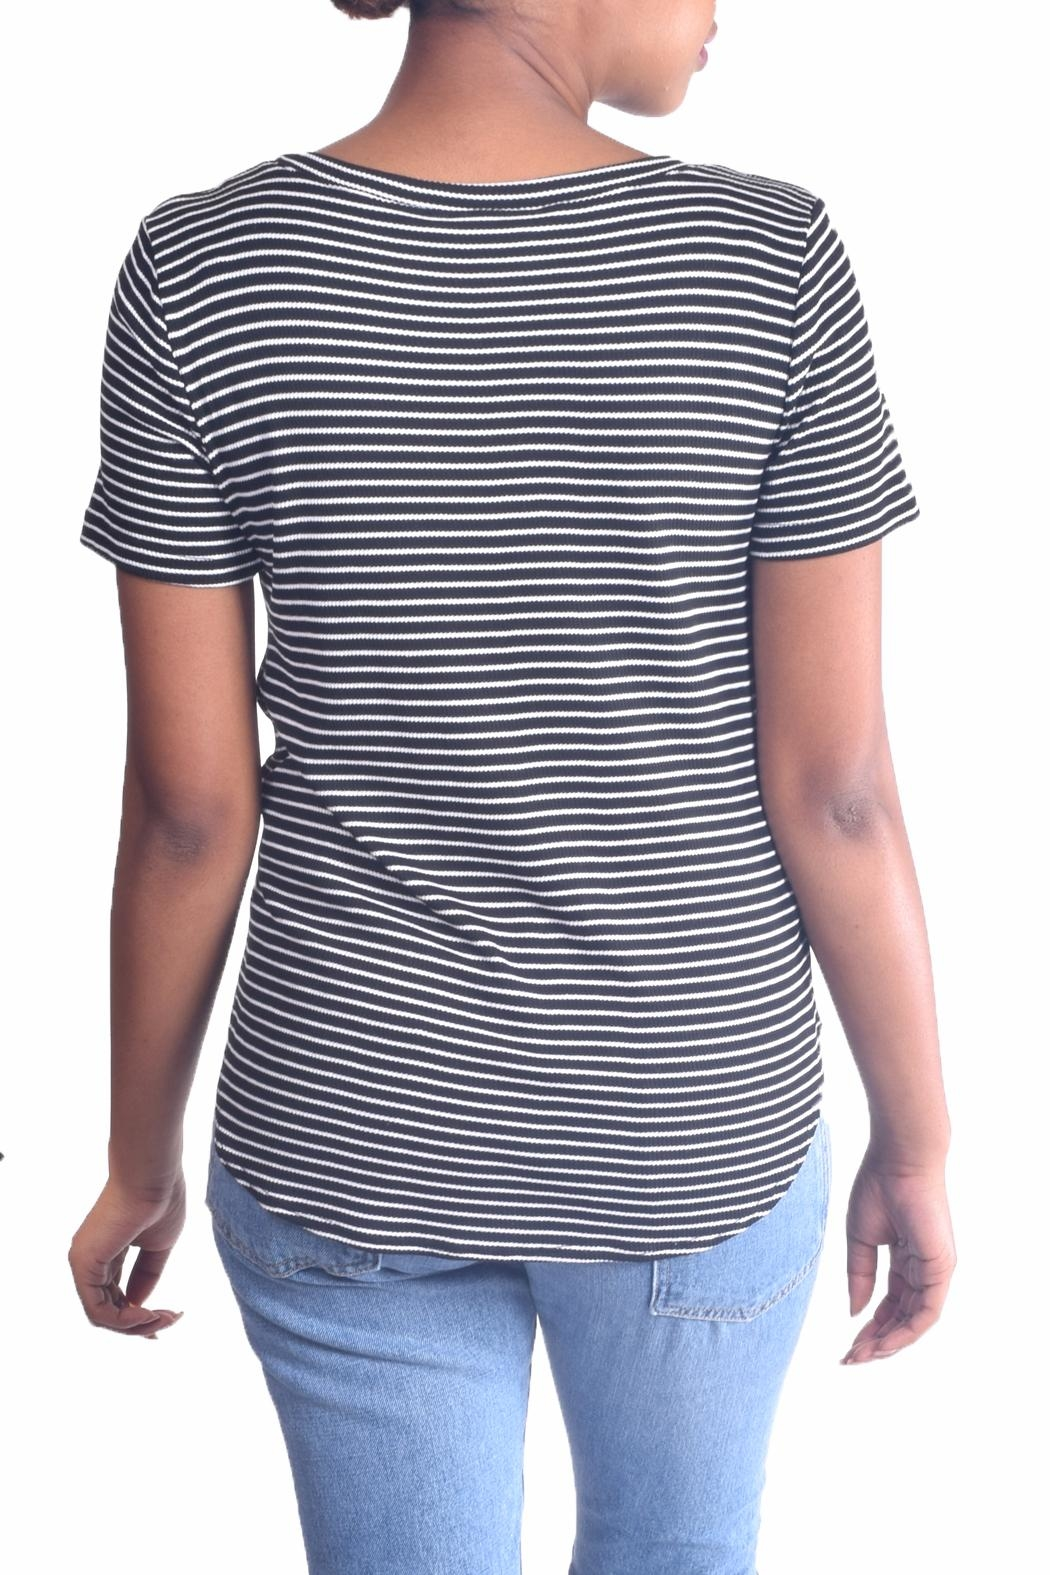 Final Touch Striped Tie Tee - Side Cropped Image